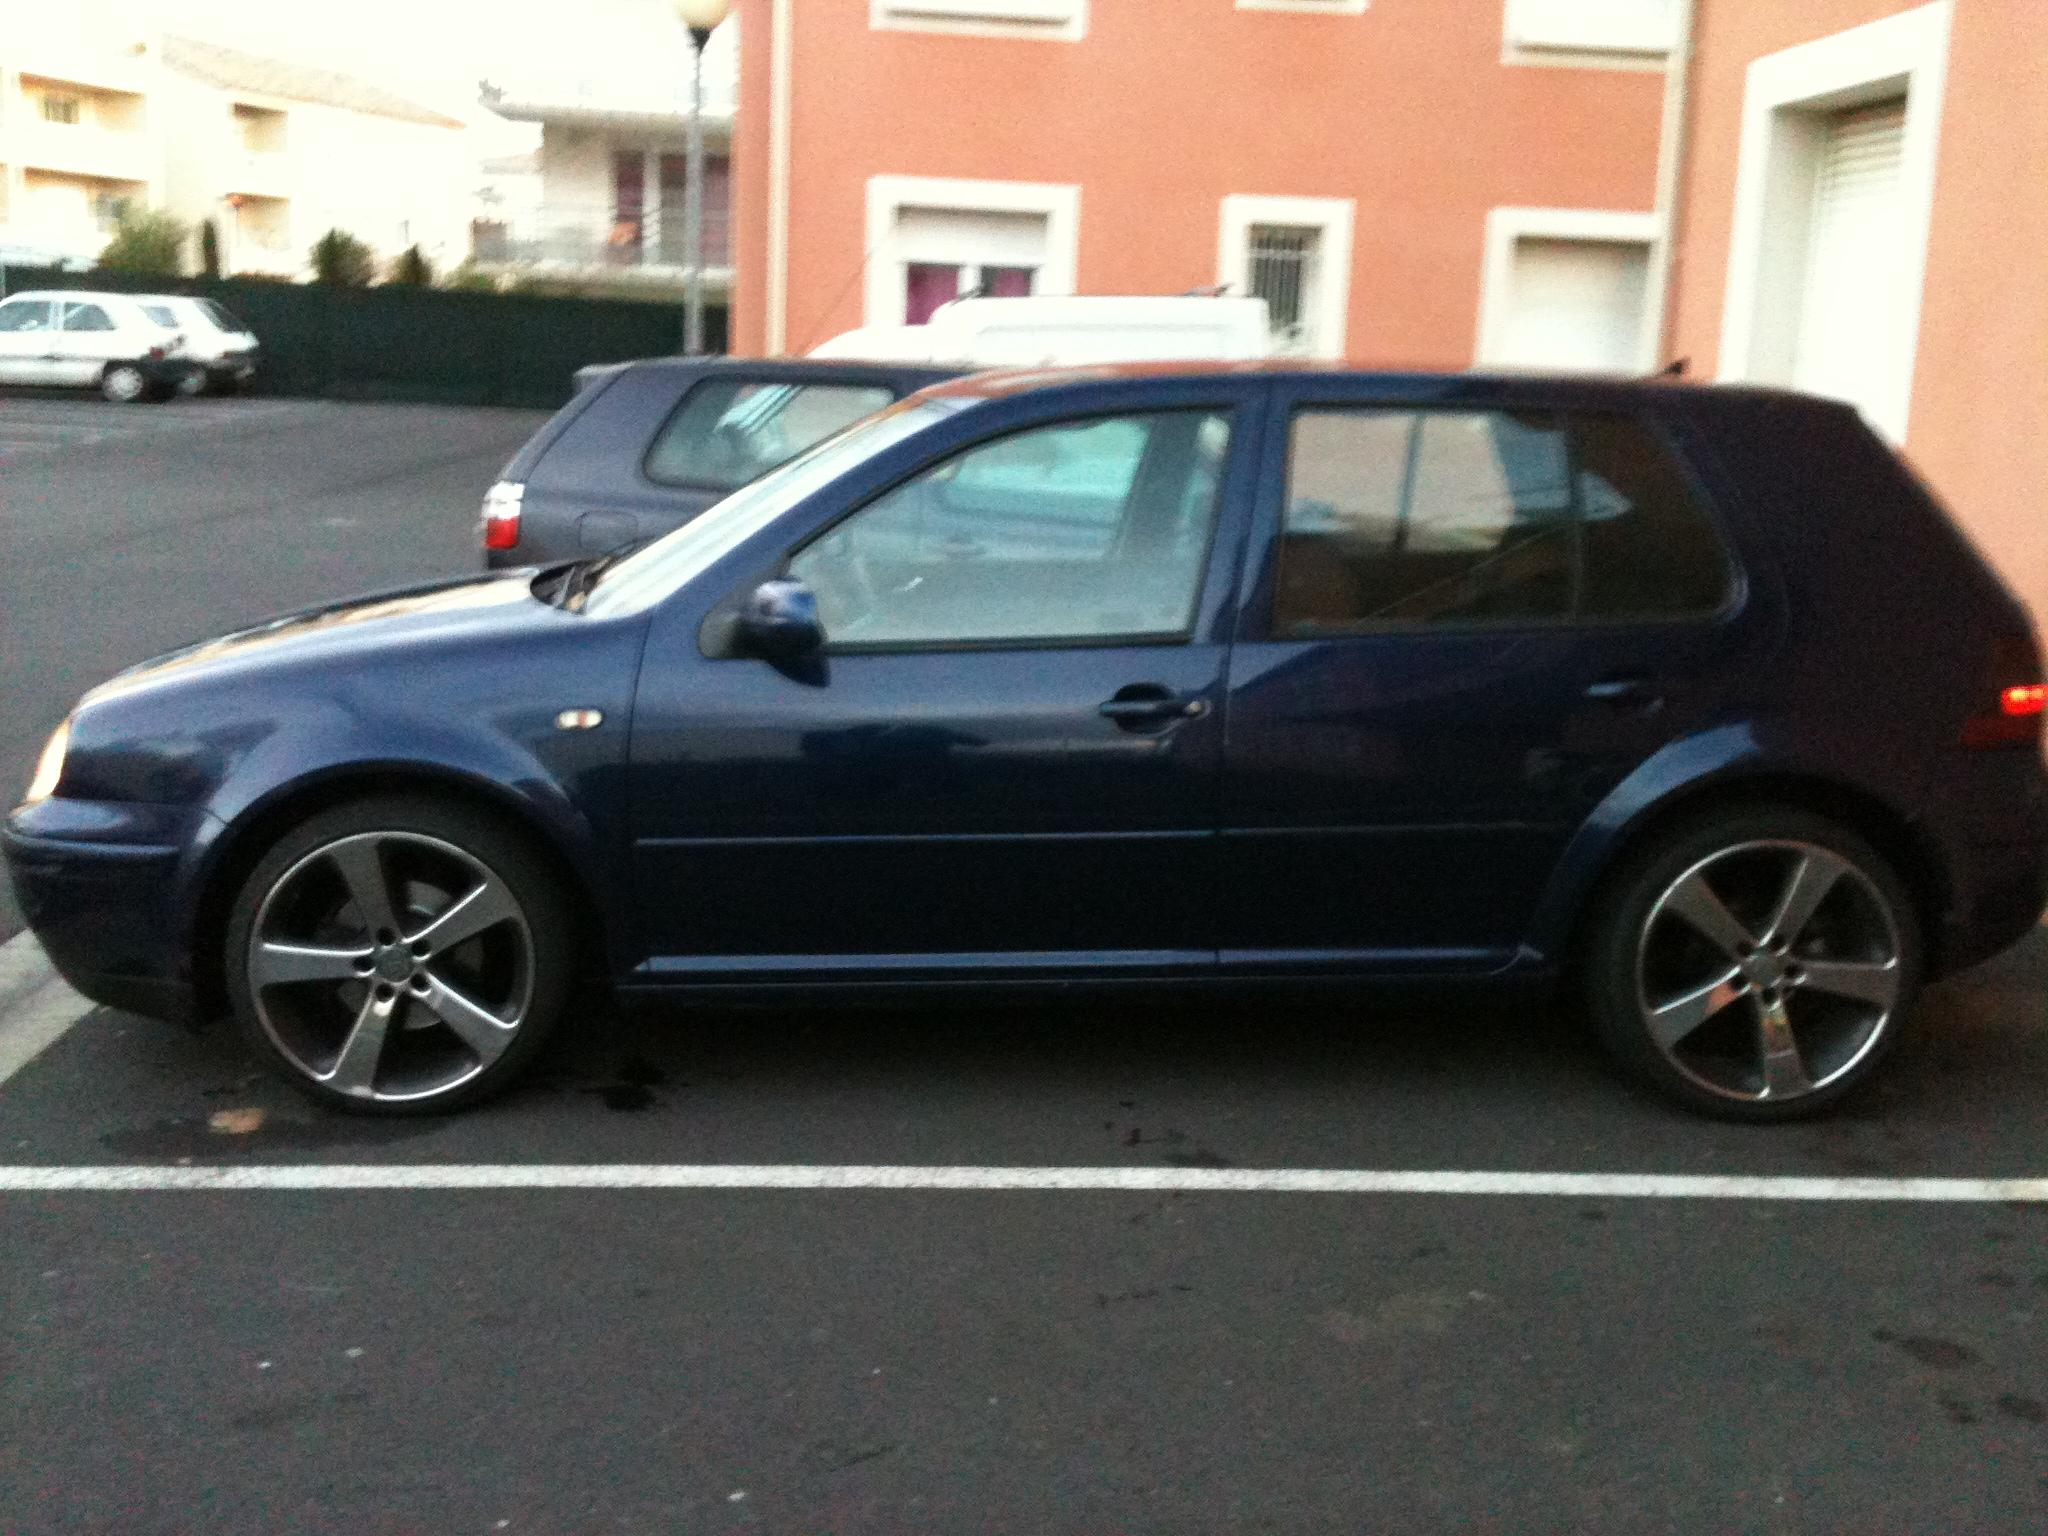 vw golf iv  tdi 100 r32 - 2003   garage des golf iv tdi 100